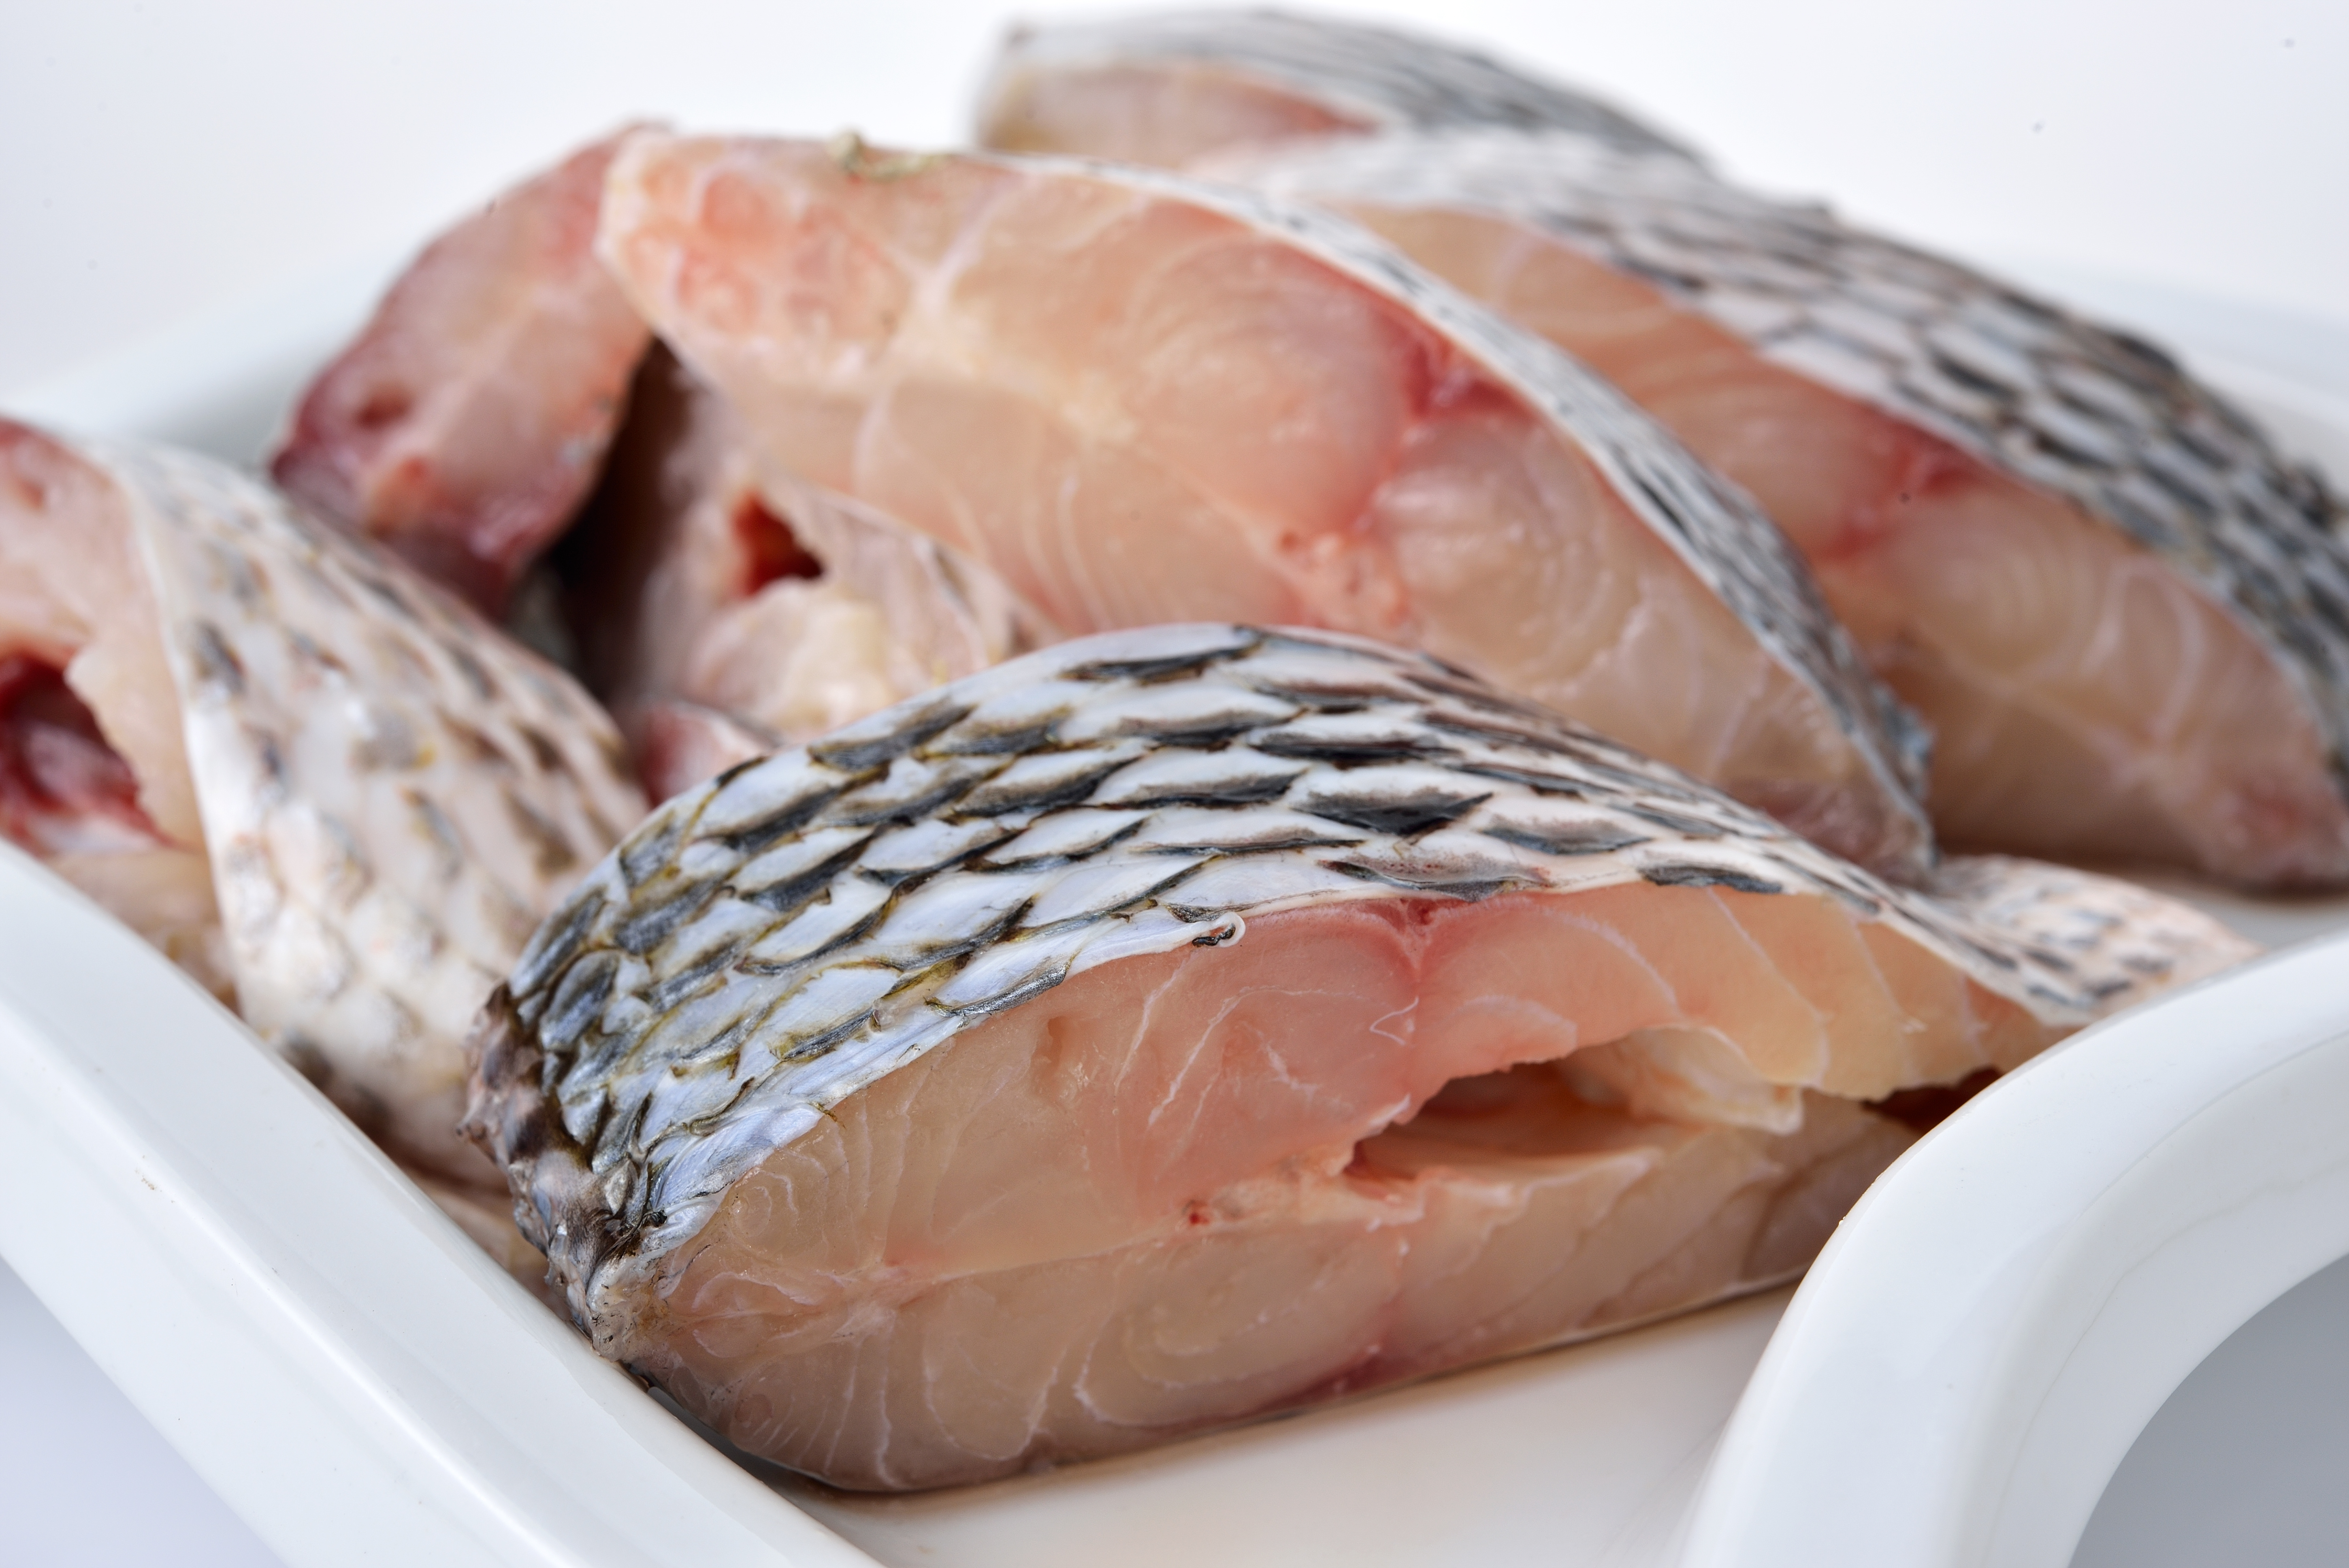 Tilapia december 2015 globefish food and agriculture for What is tilapia fish